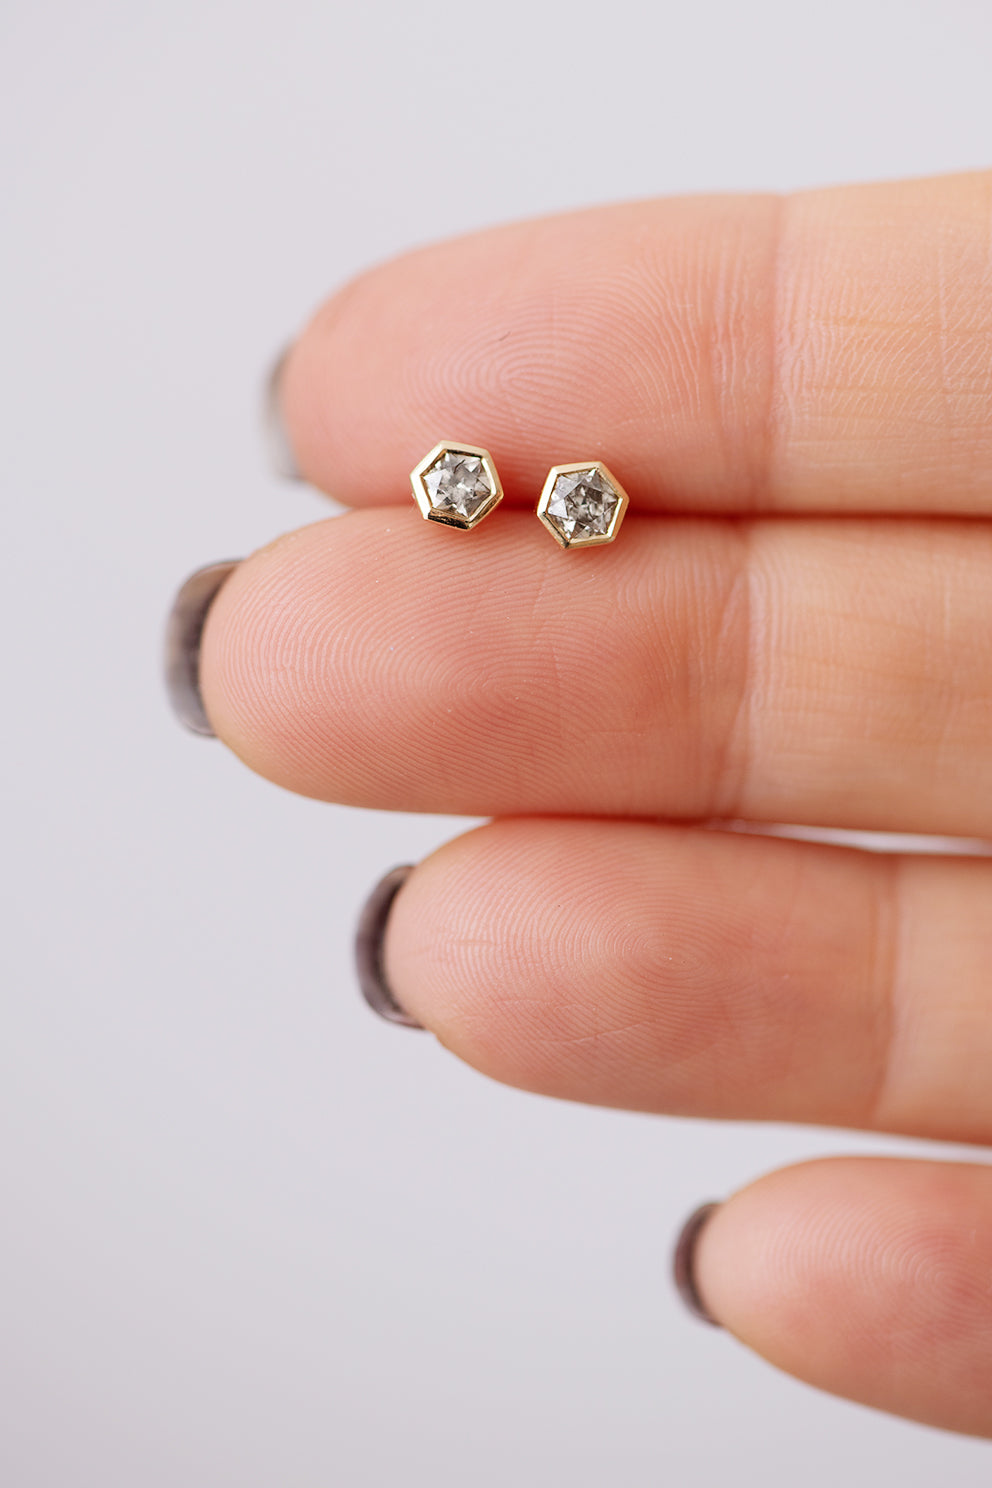 Hexagon Diamond Earrings Size Comparison